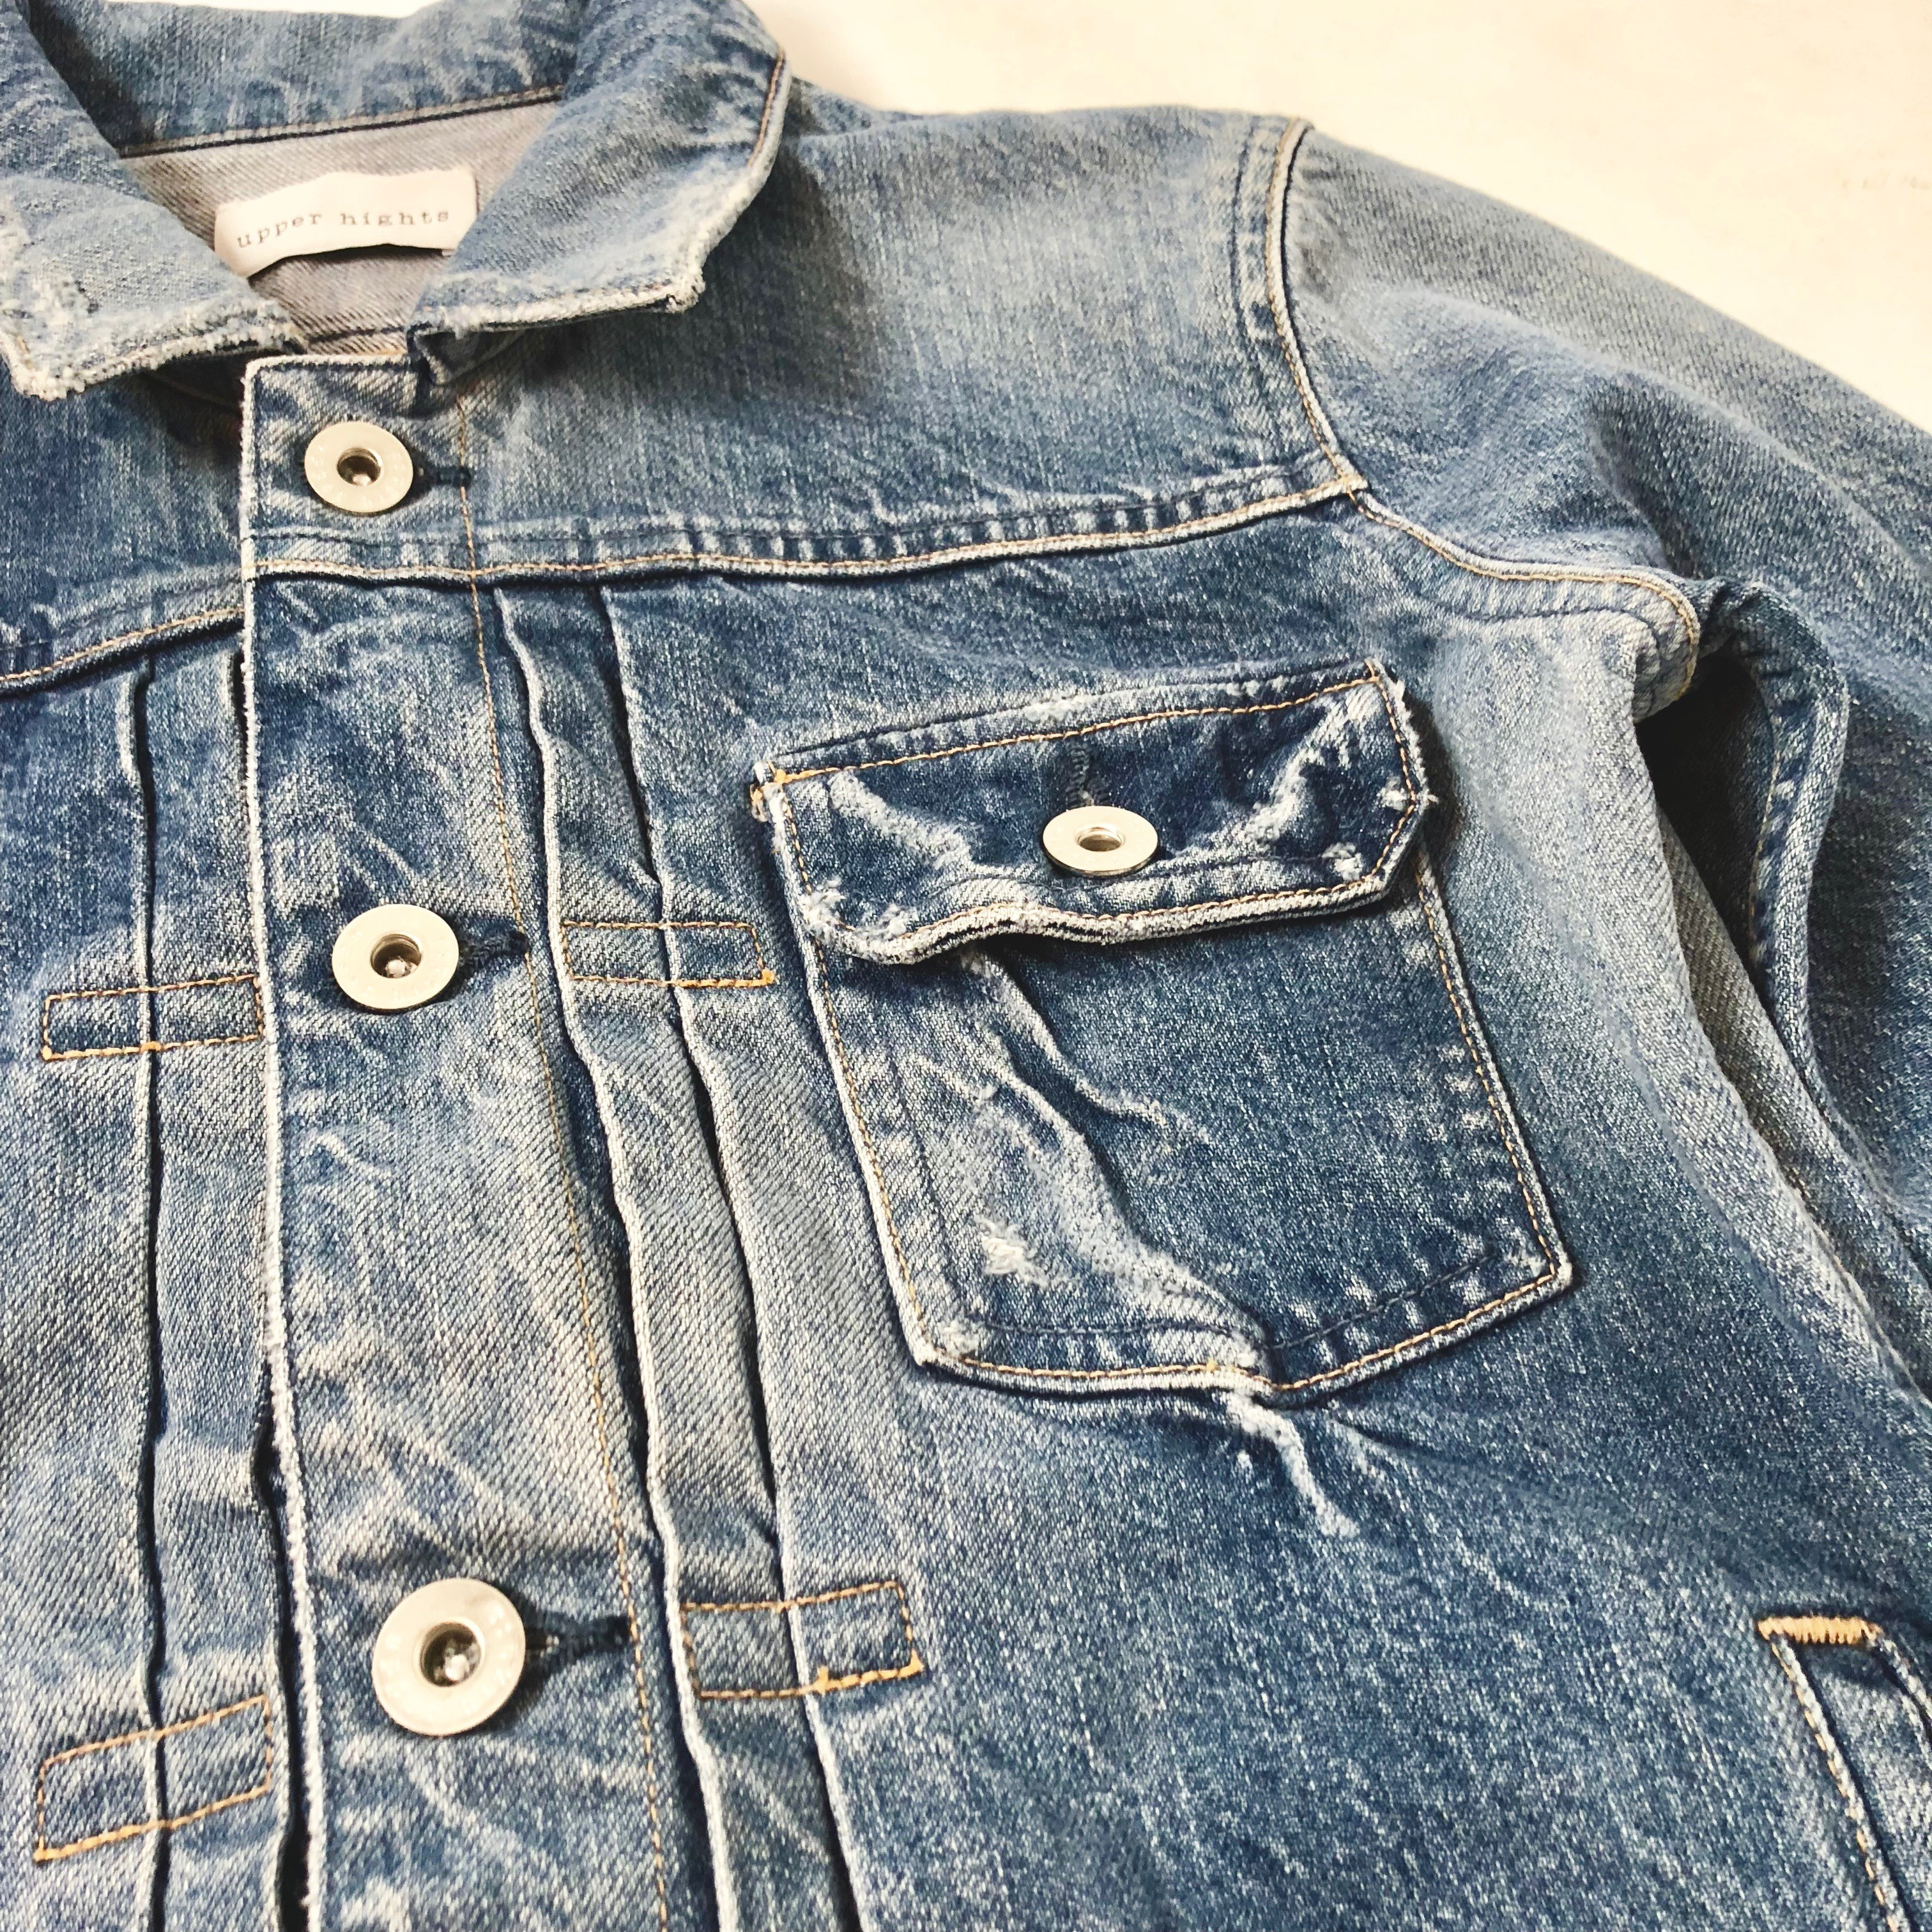 RECOMMEND:THE JEAN JACKET